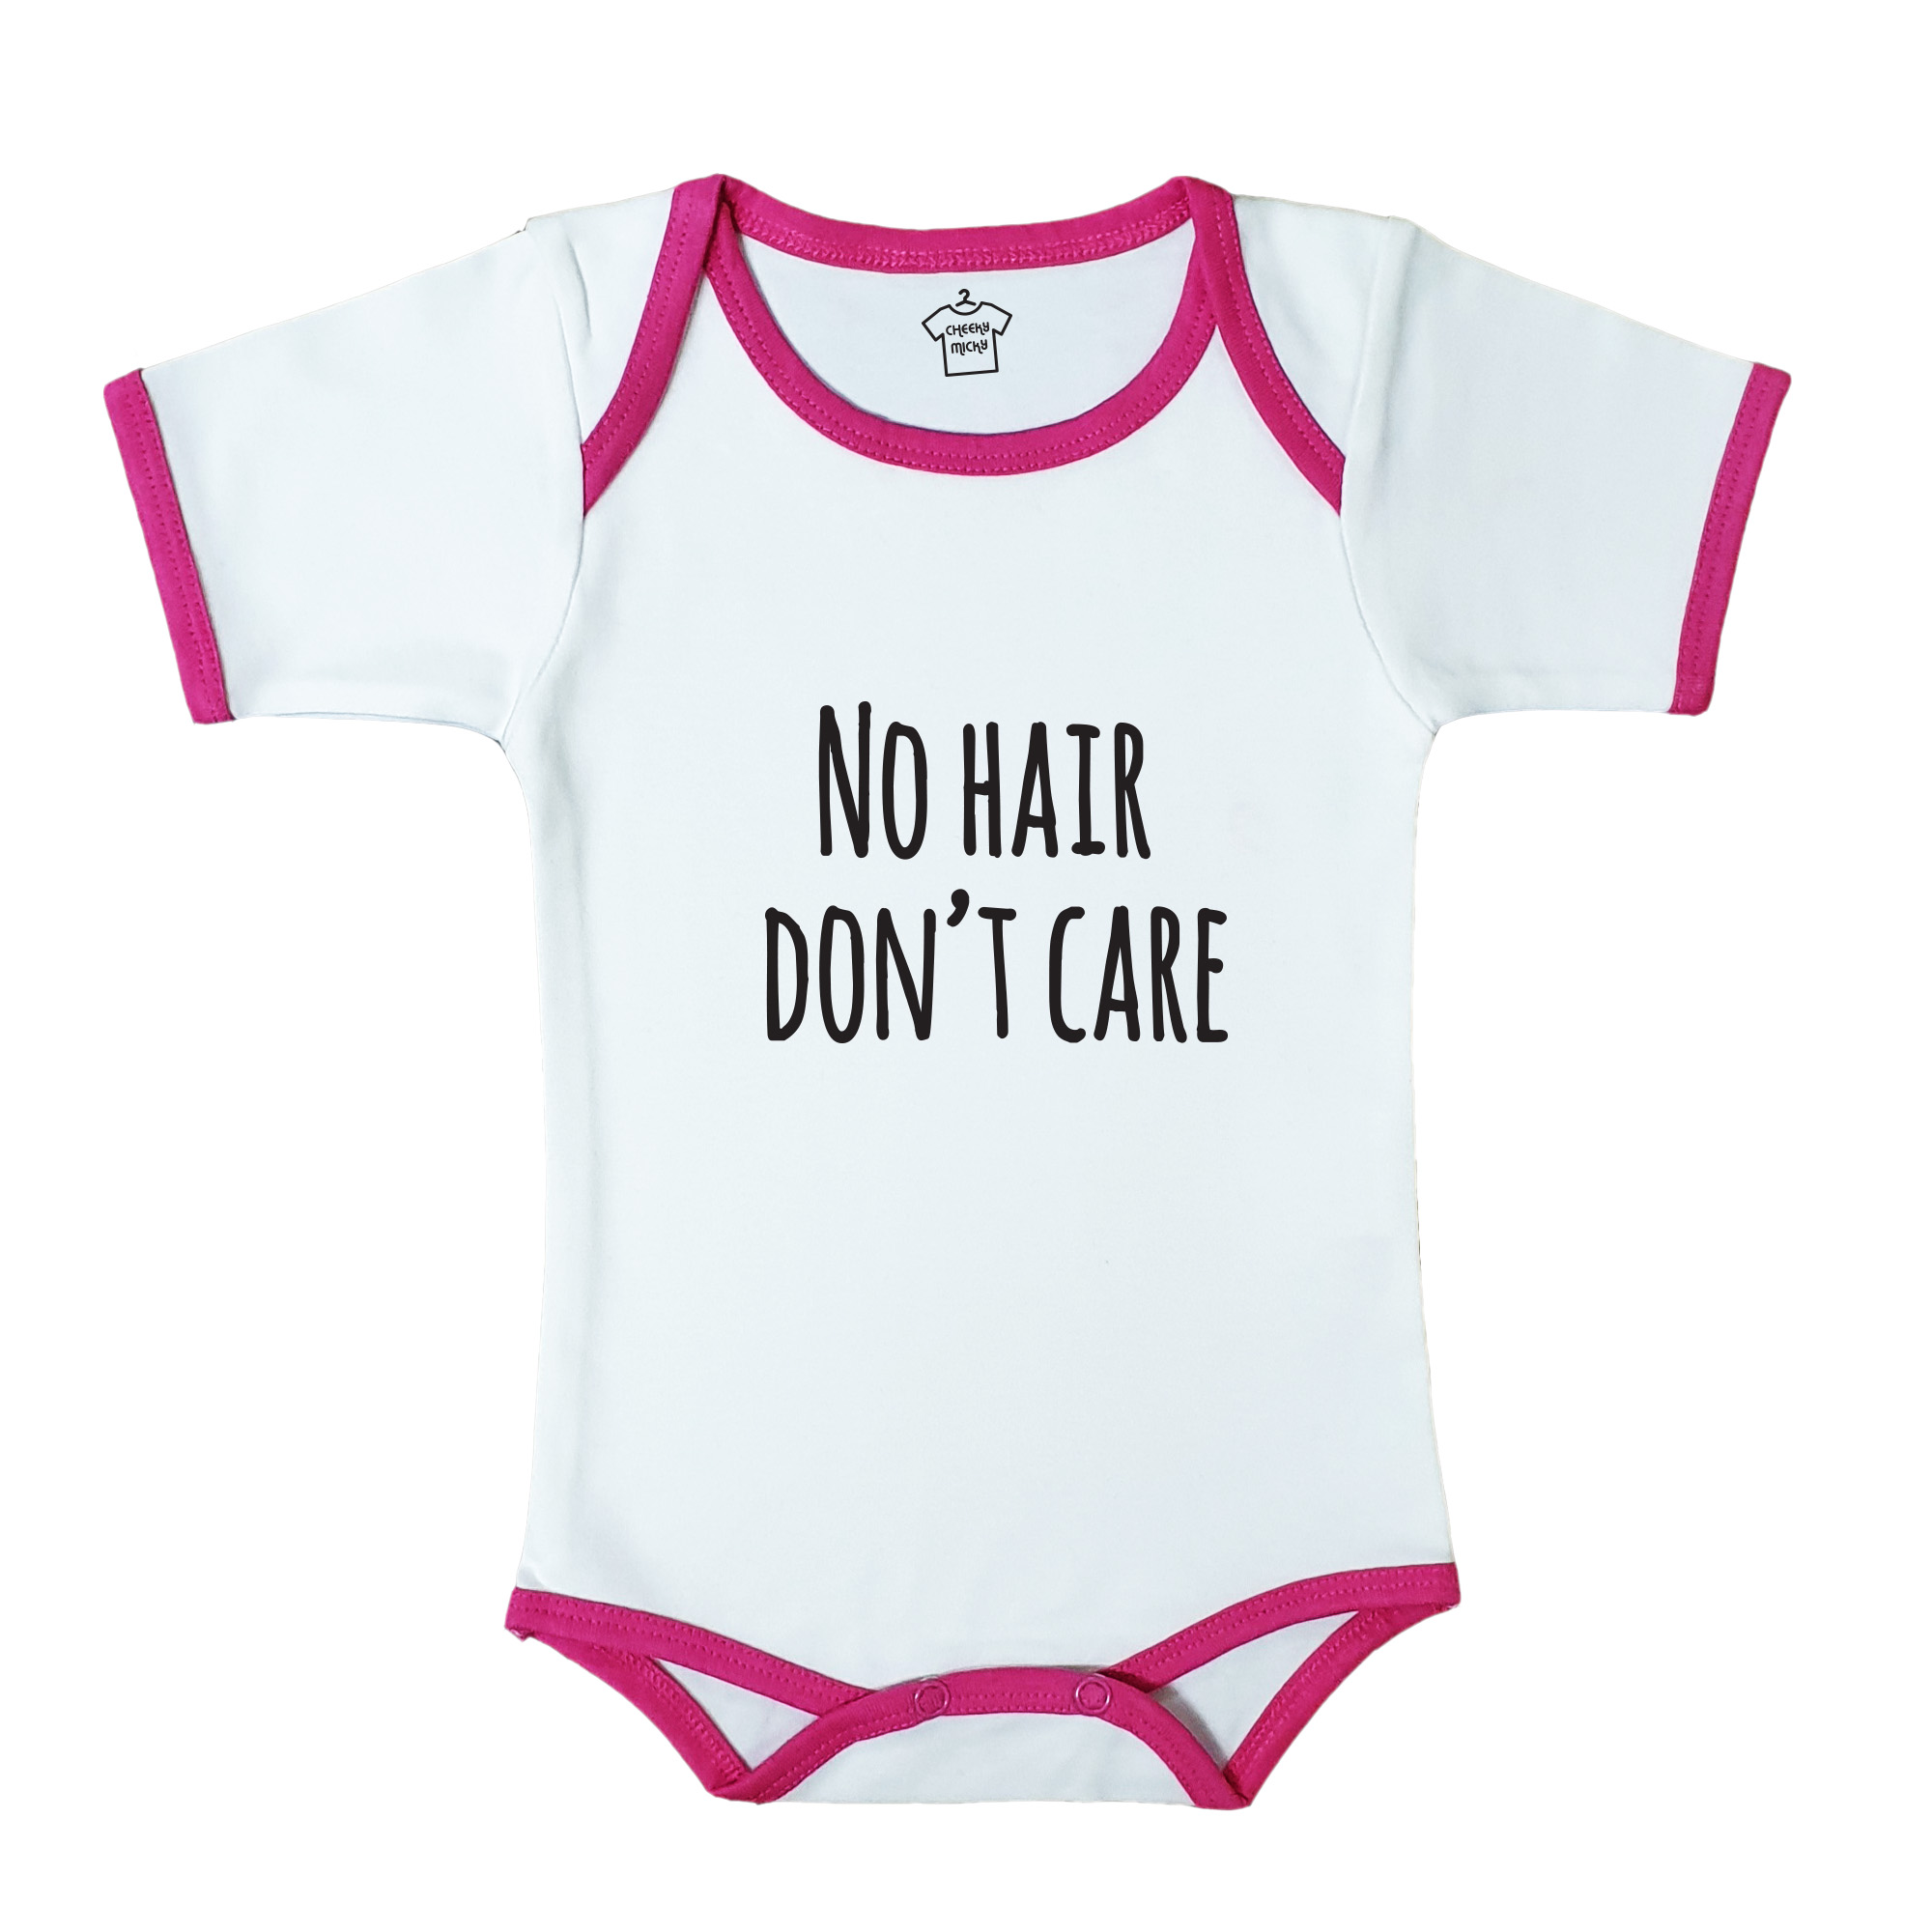 Soft baby body suit with pink trim, 100% cotton, machine washable. Age 6-12 months. Print: No Hair Don't Care.